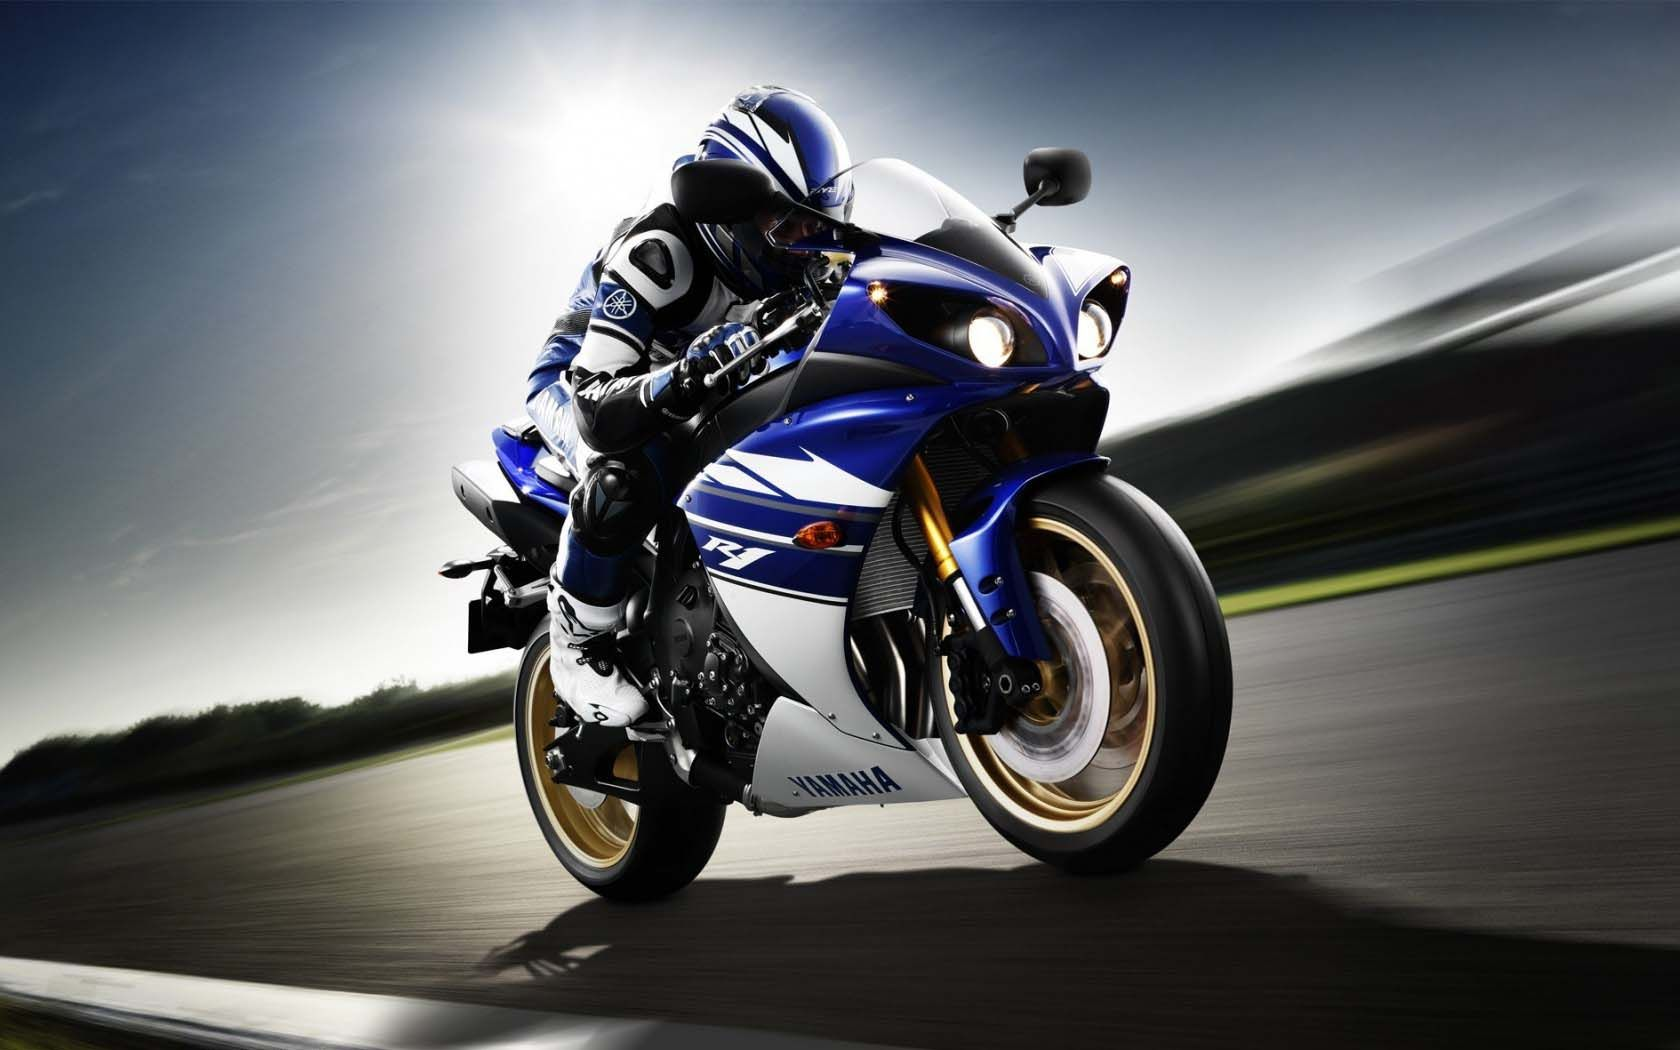 yamaha bike hd wallpapers : get free top quality yamaha bike hd